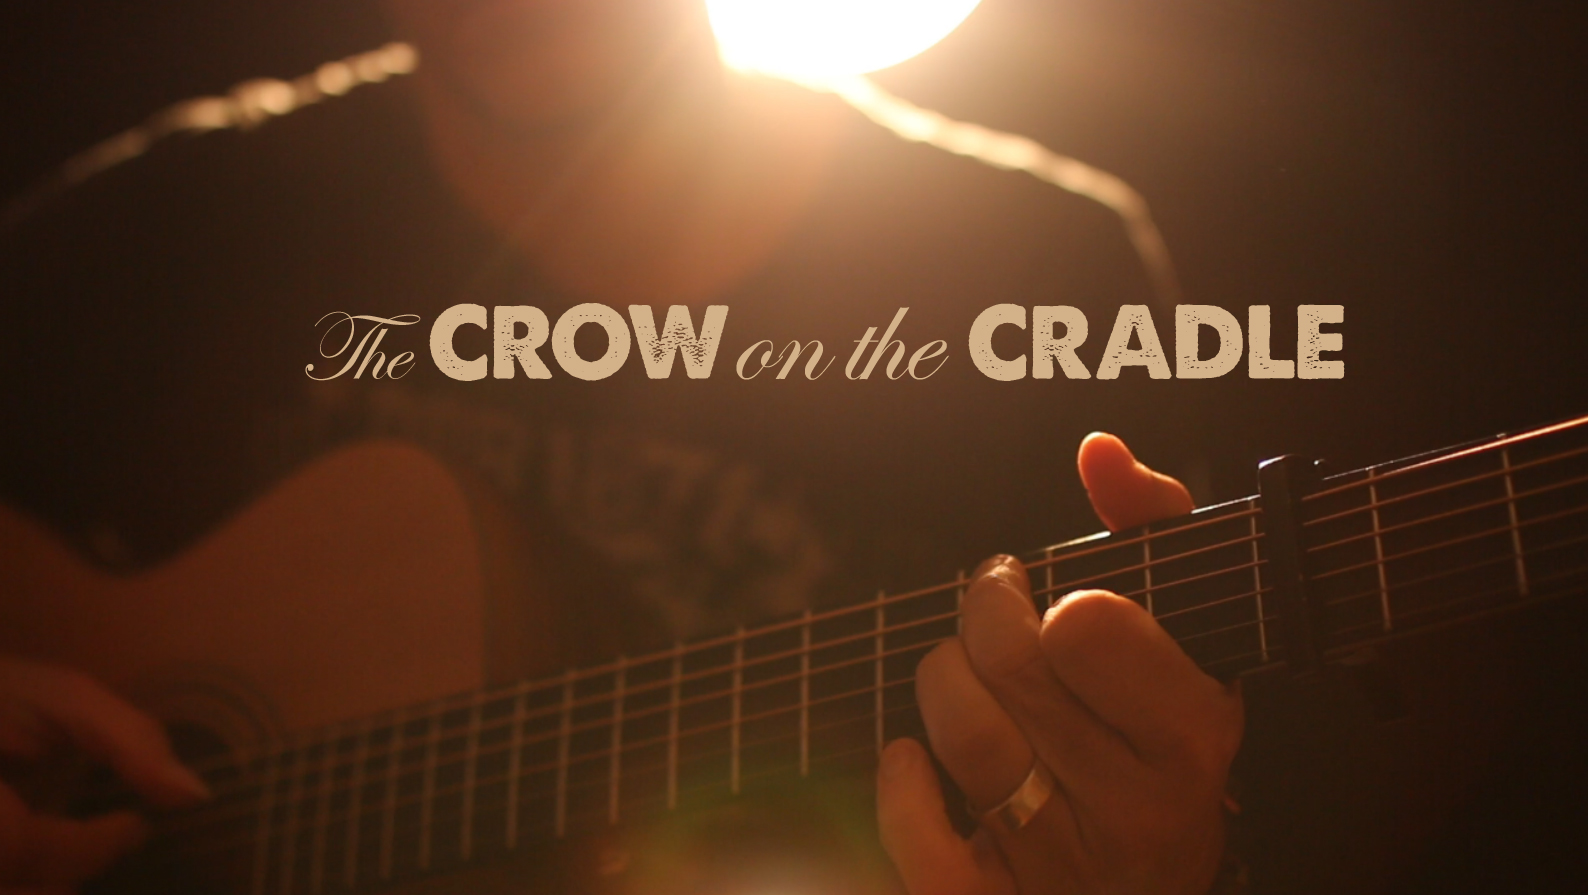 New Video is getting a lot of attention! 'The Crow on The Cradle'